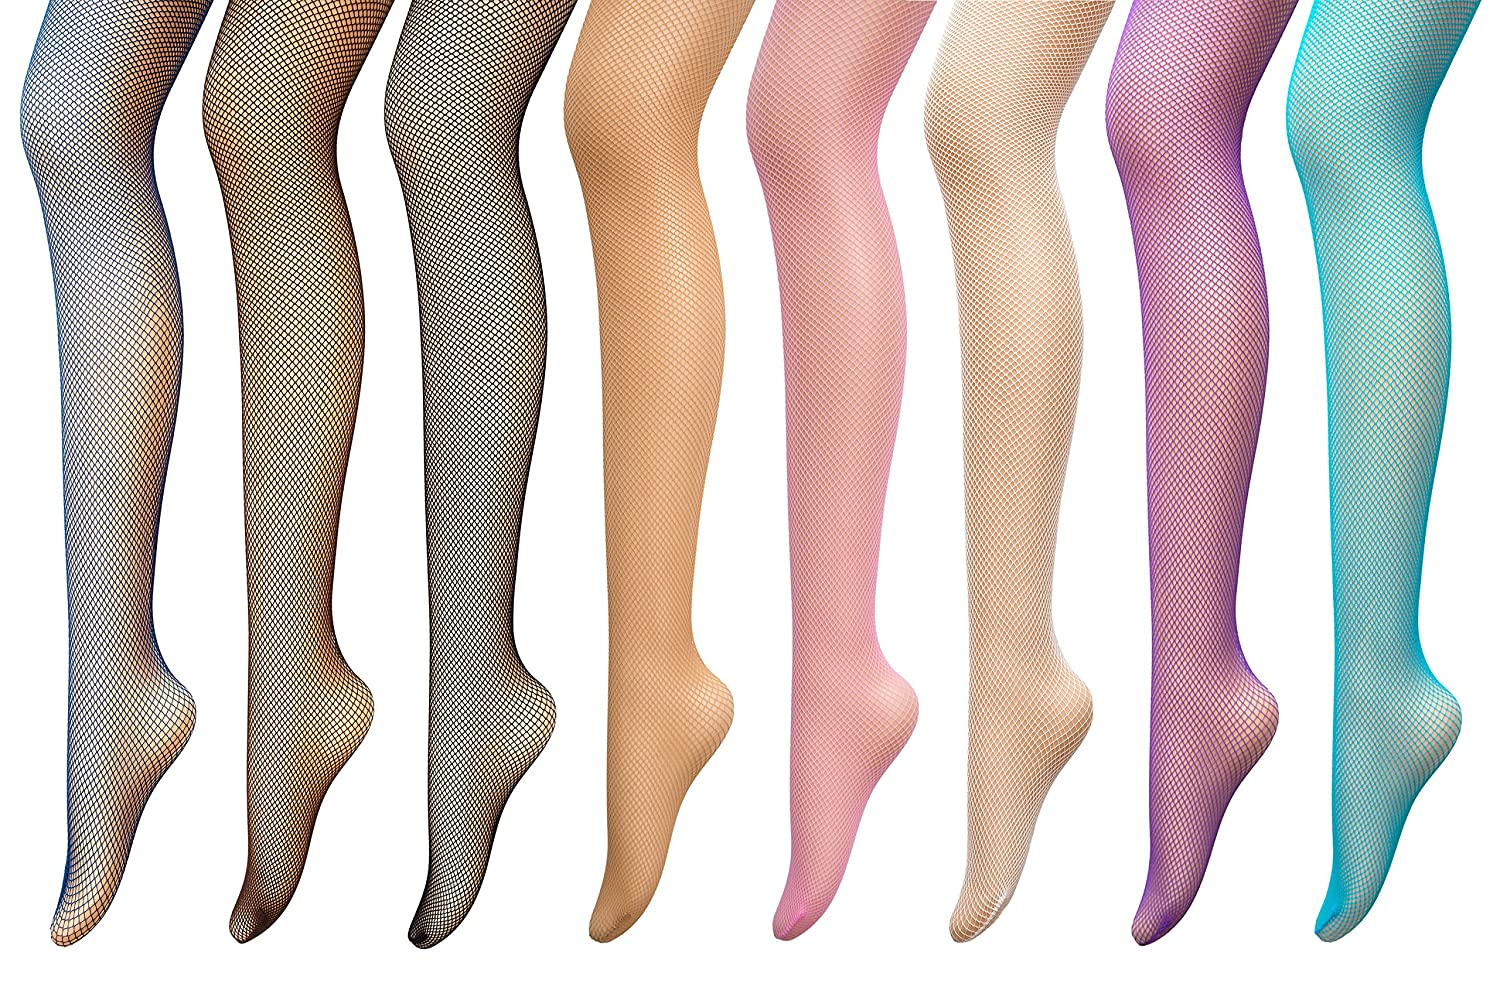 1960s Inspired Fashion: Recreate the Look PreSox Fishnet Tights Seamless Nylon Mesh Stockings Control Top Sheer Pantyhose for Women Girls 8 Color $19.99 AT vintagedancer.com